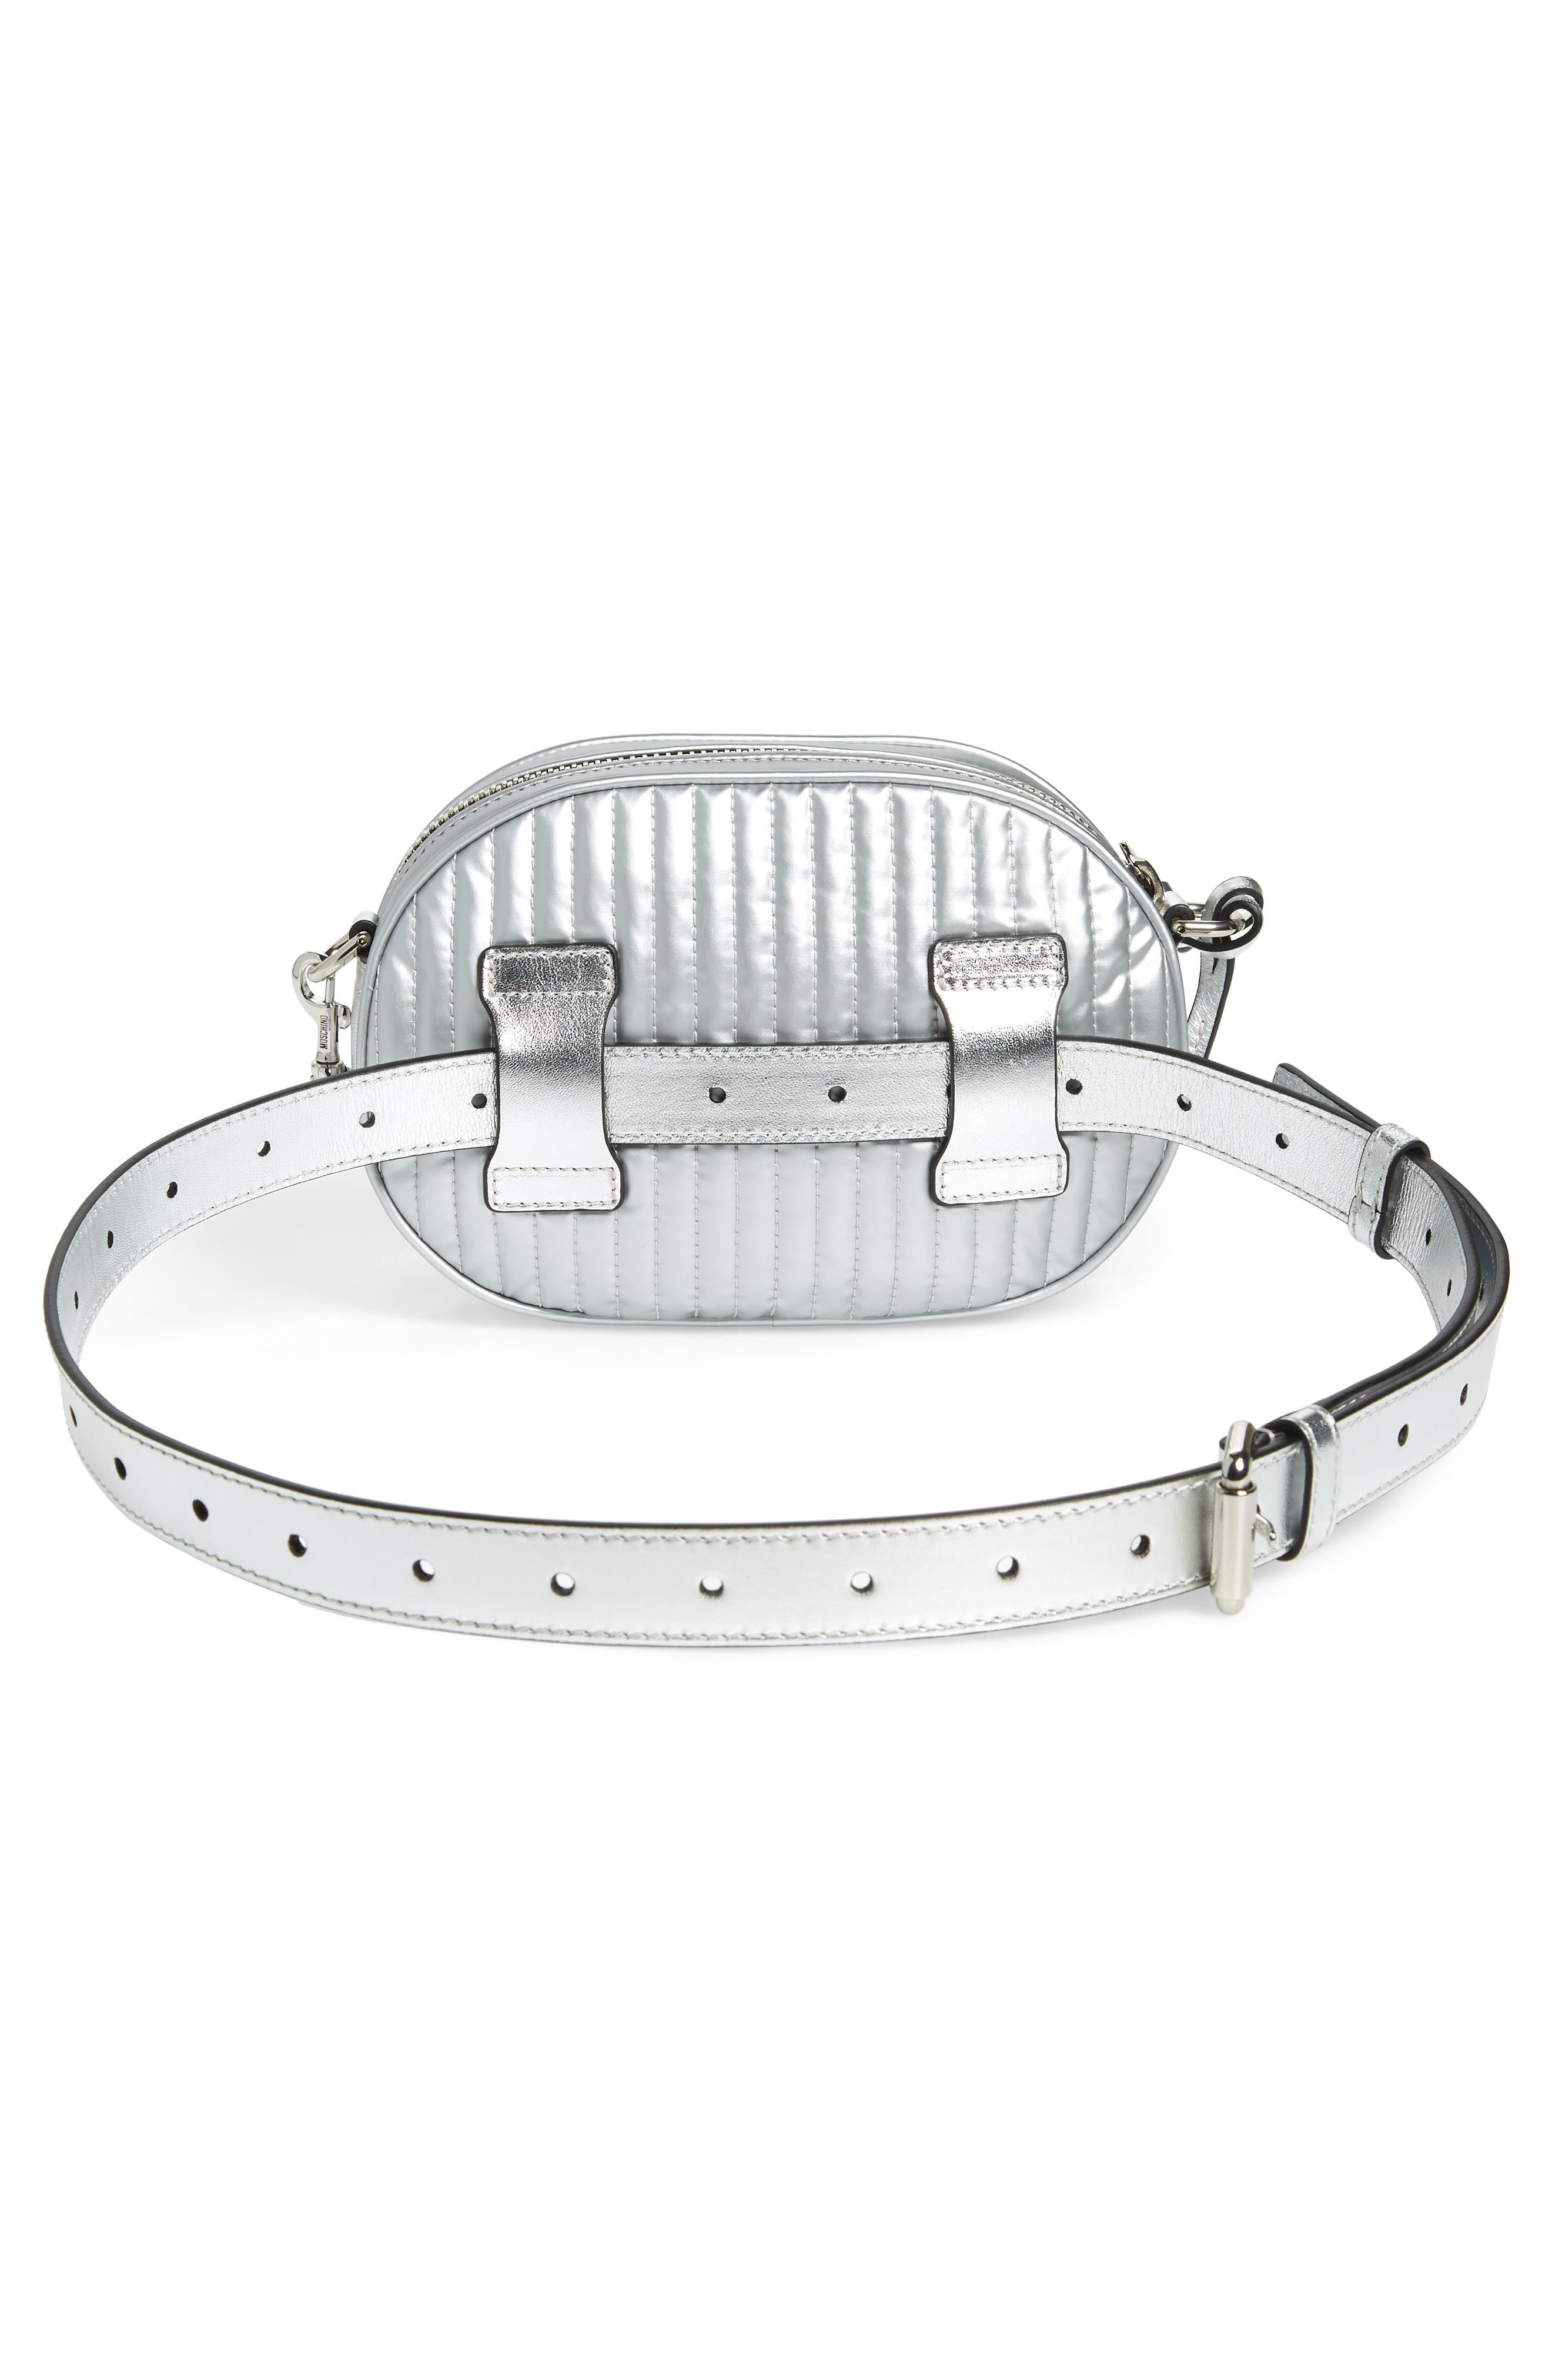 MOSCHINO, Silver Teddy Belt Bag, Alternate thumbnail 4, color, SILVER